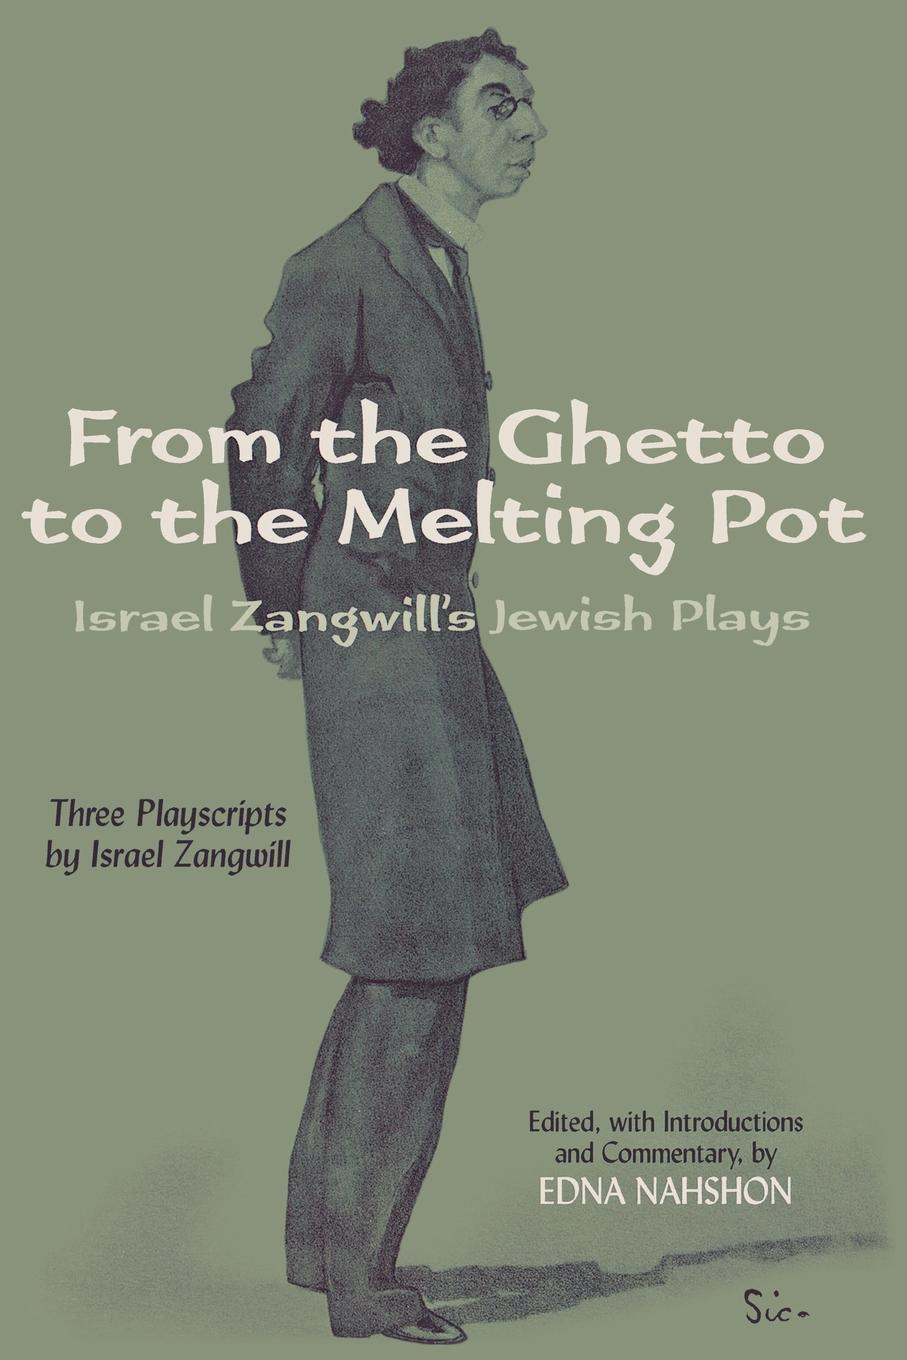 Israel Zangwill From the Ghetto to the Melting Pot. Israel Zangwill.s Jewish Plays mikhail rosen jewish happiness in israel